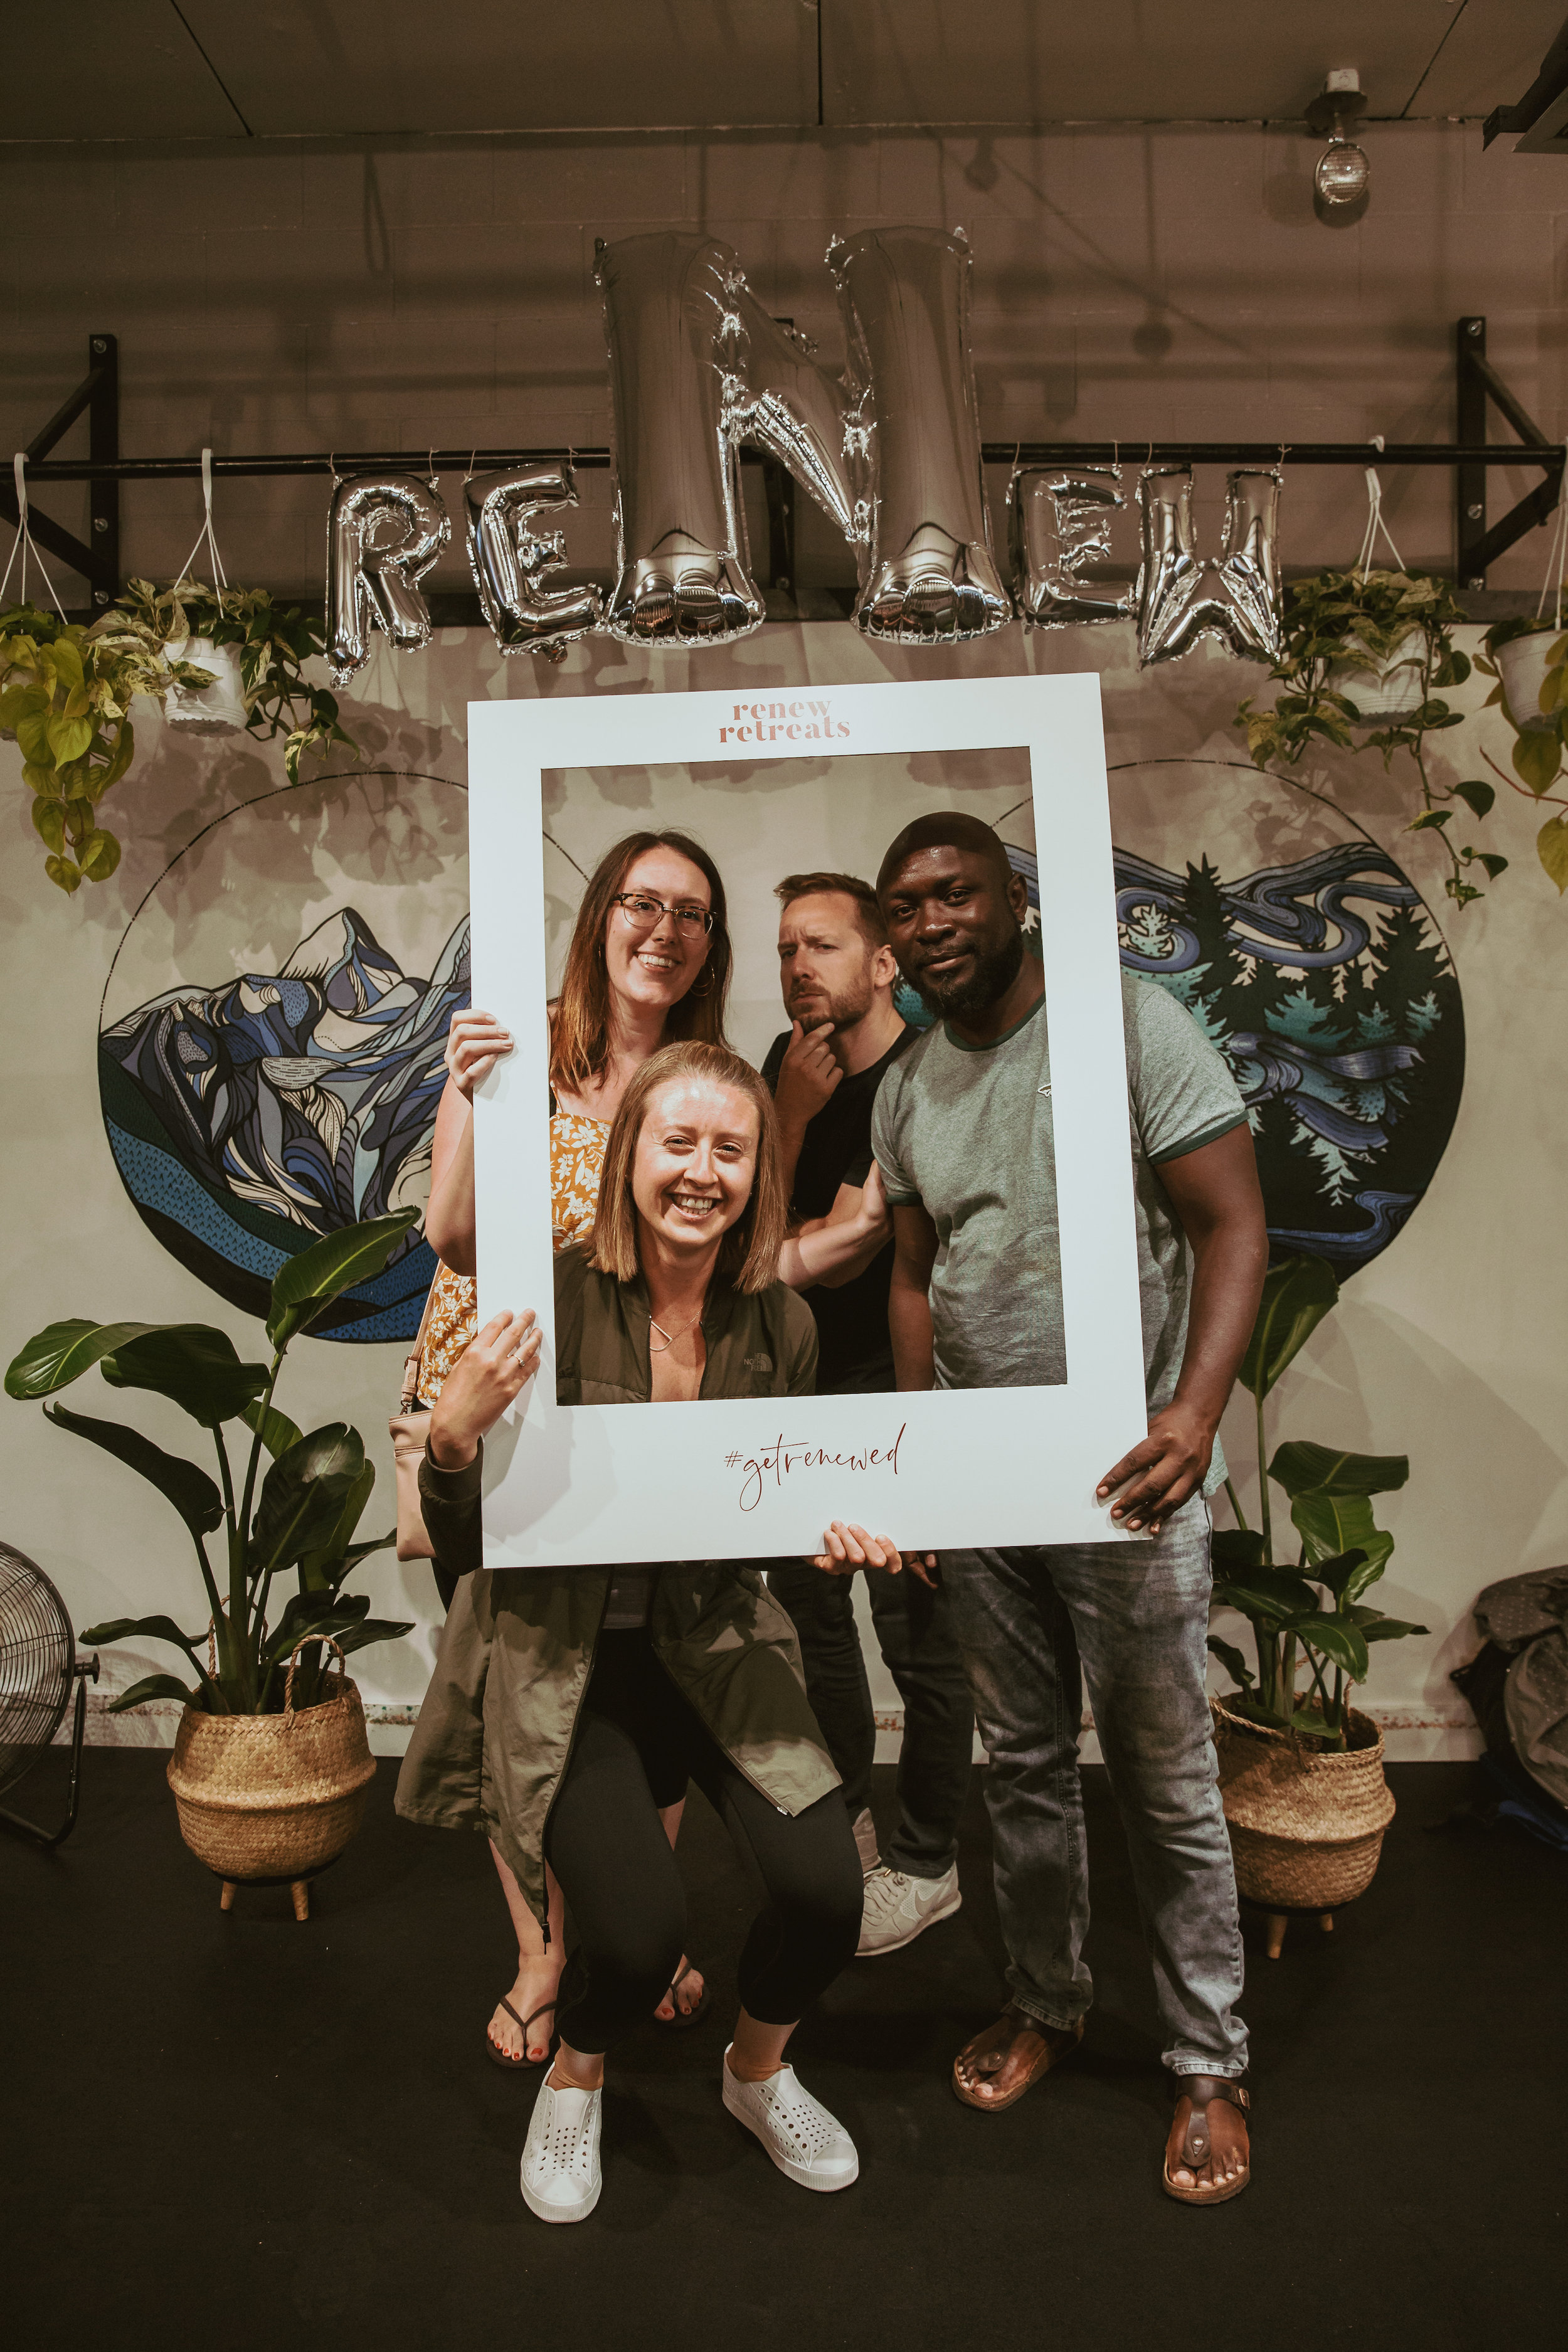 renewretreats-launch-20190810-64.jpg